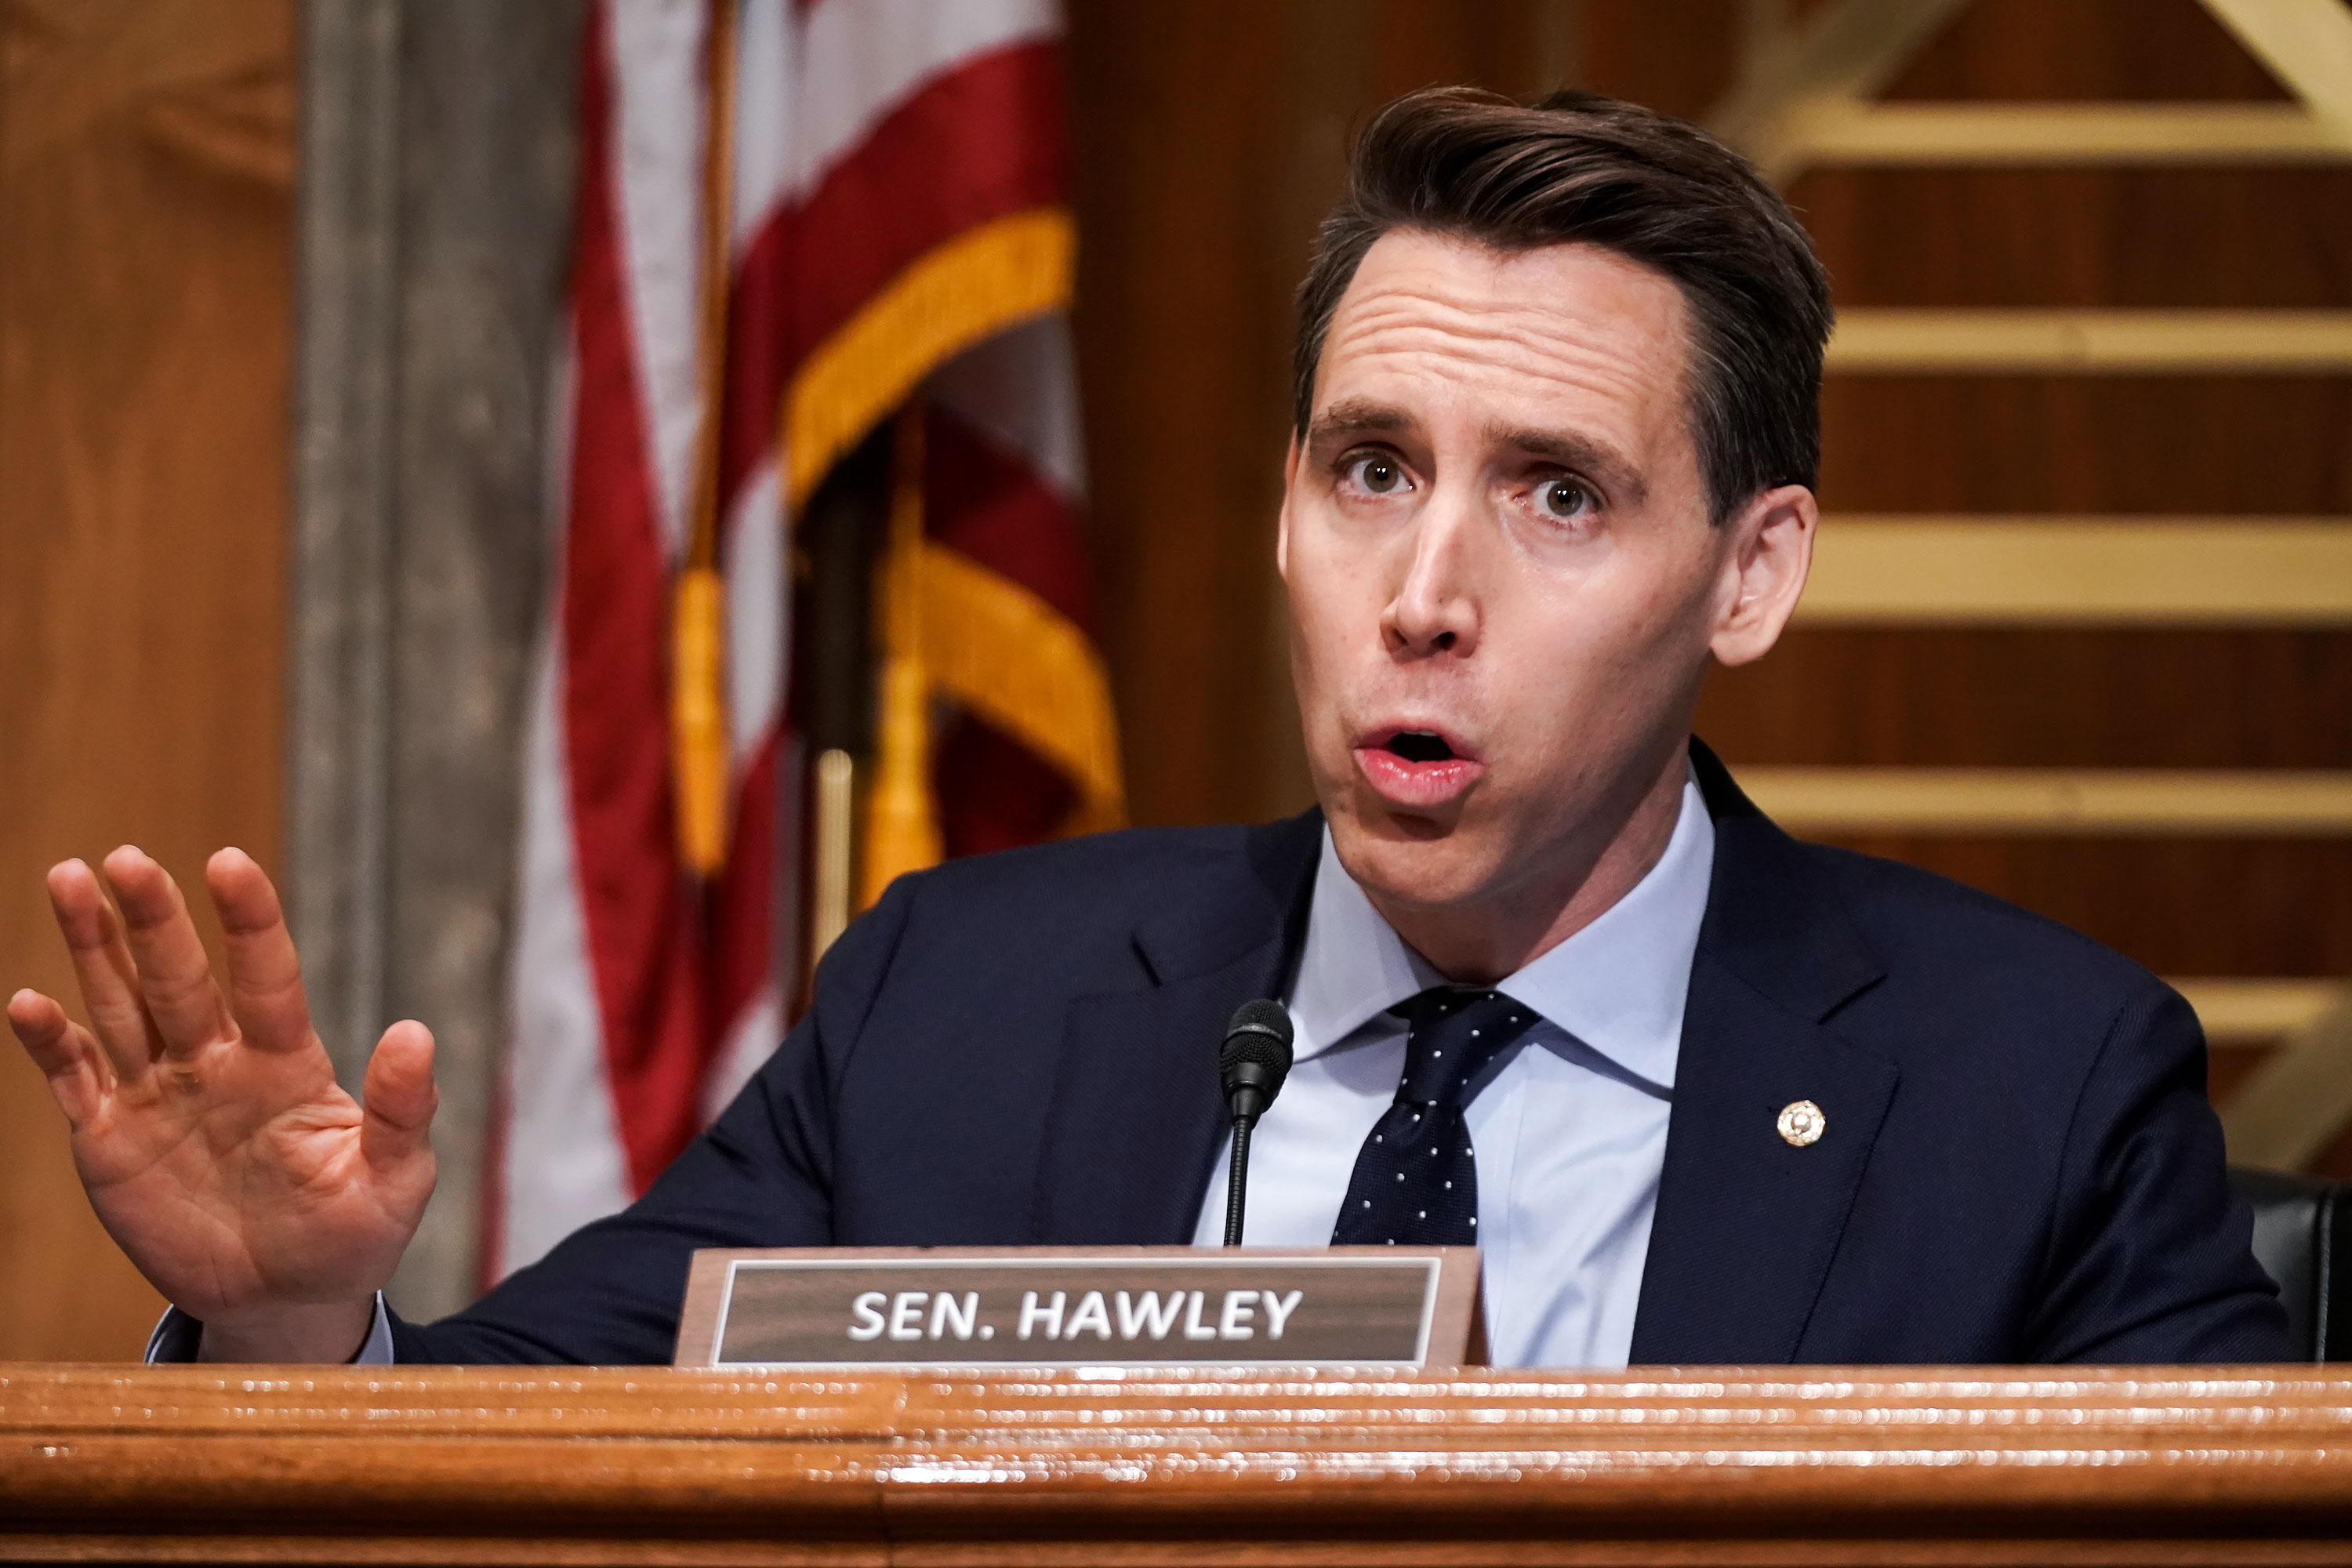 Hawley defends opposition to every Biden Cabinet nominee: 'I take them one at a time'